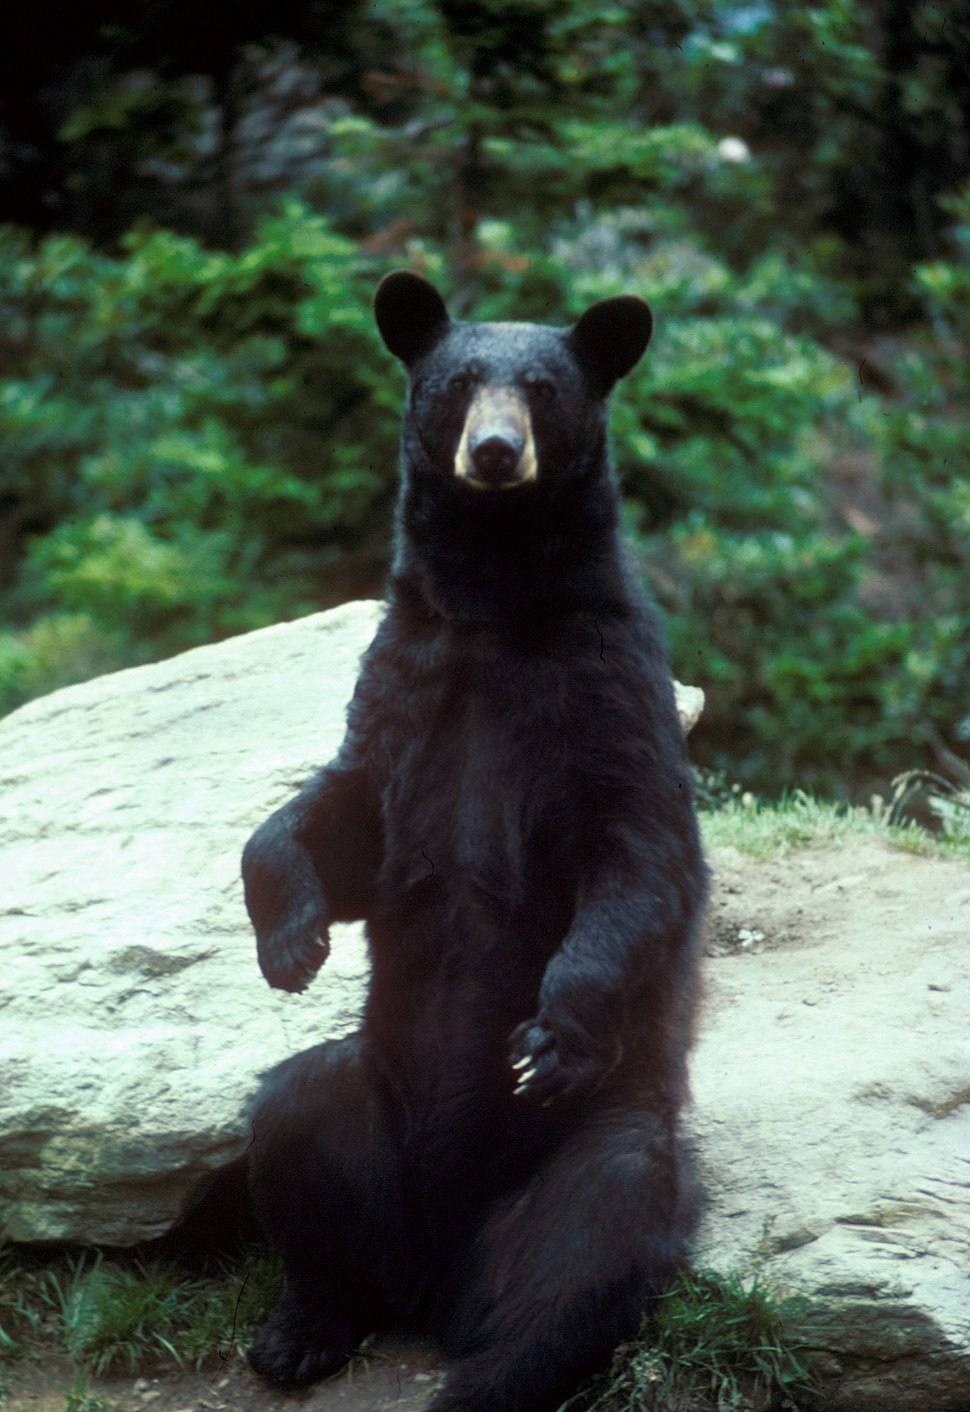 Black bear large